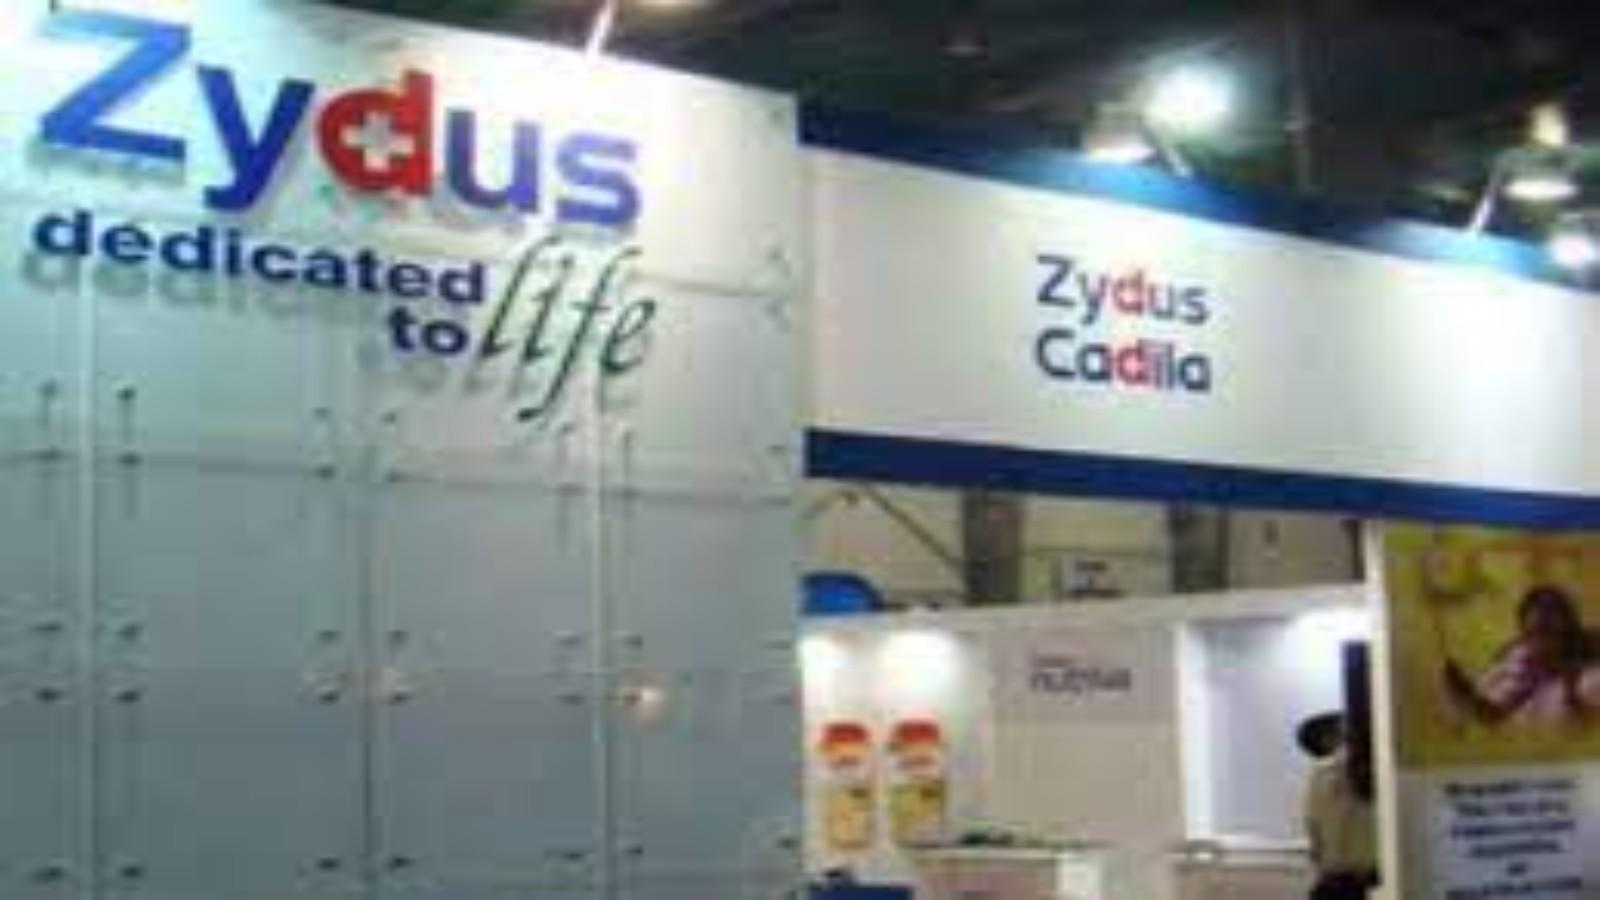 zydus-virafin-gets-emergency-use-approval-for-treating-moderate-covid-19-cases